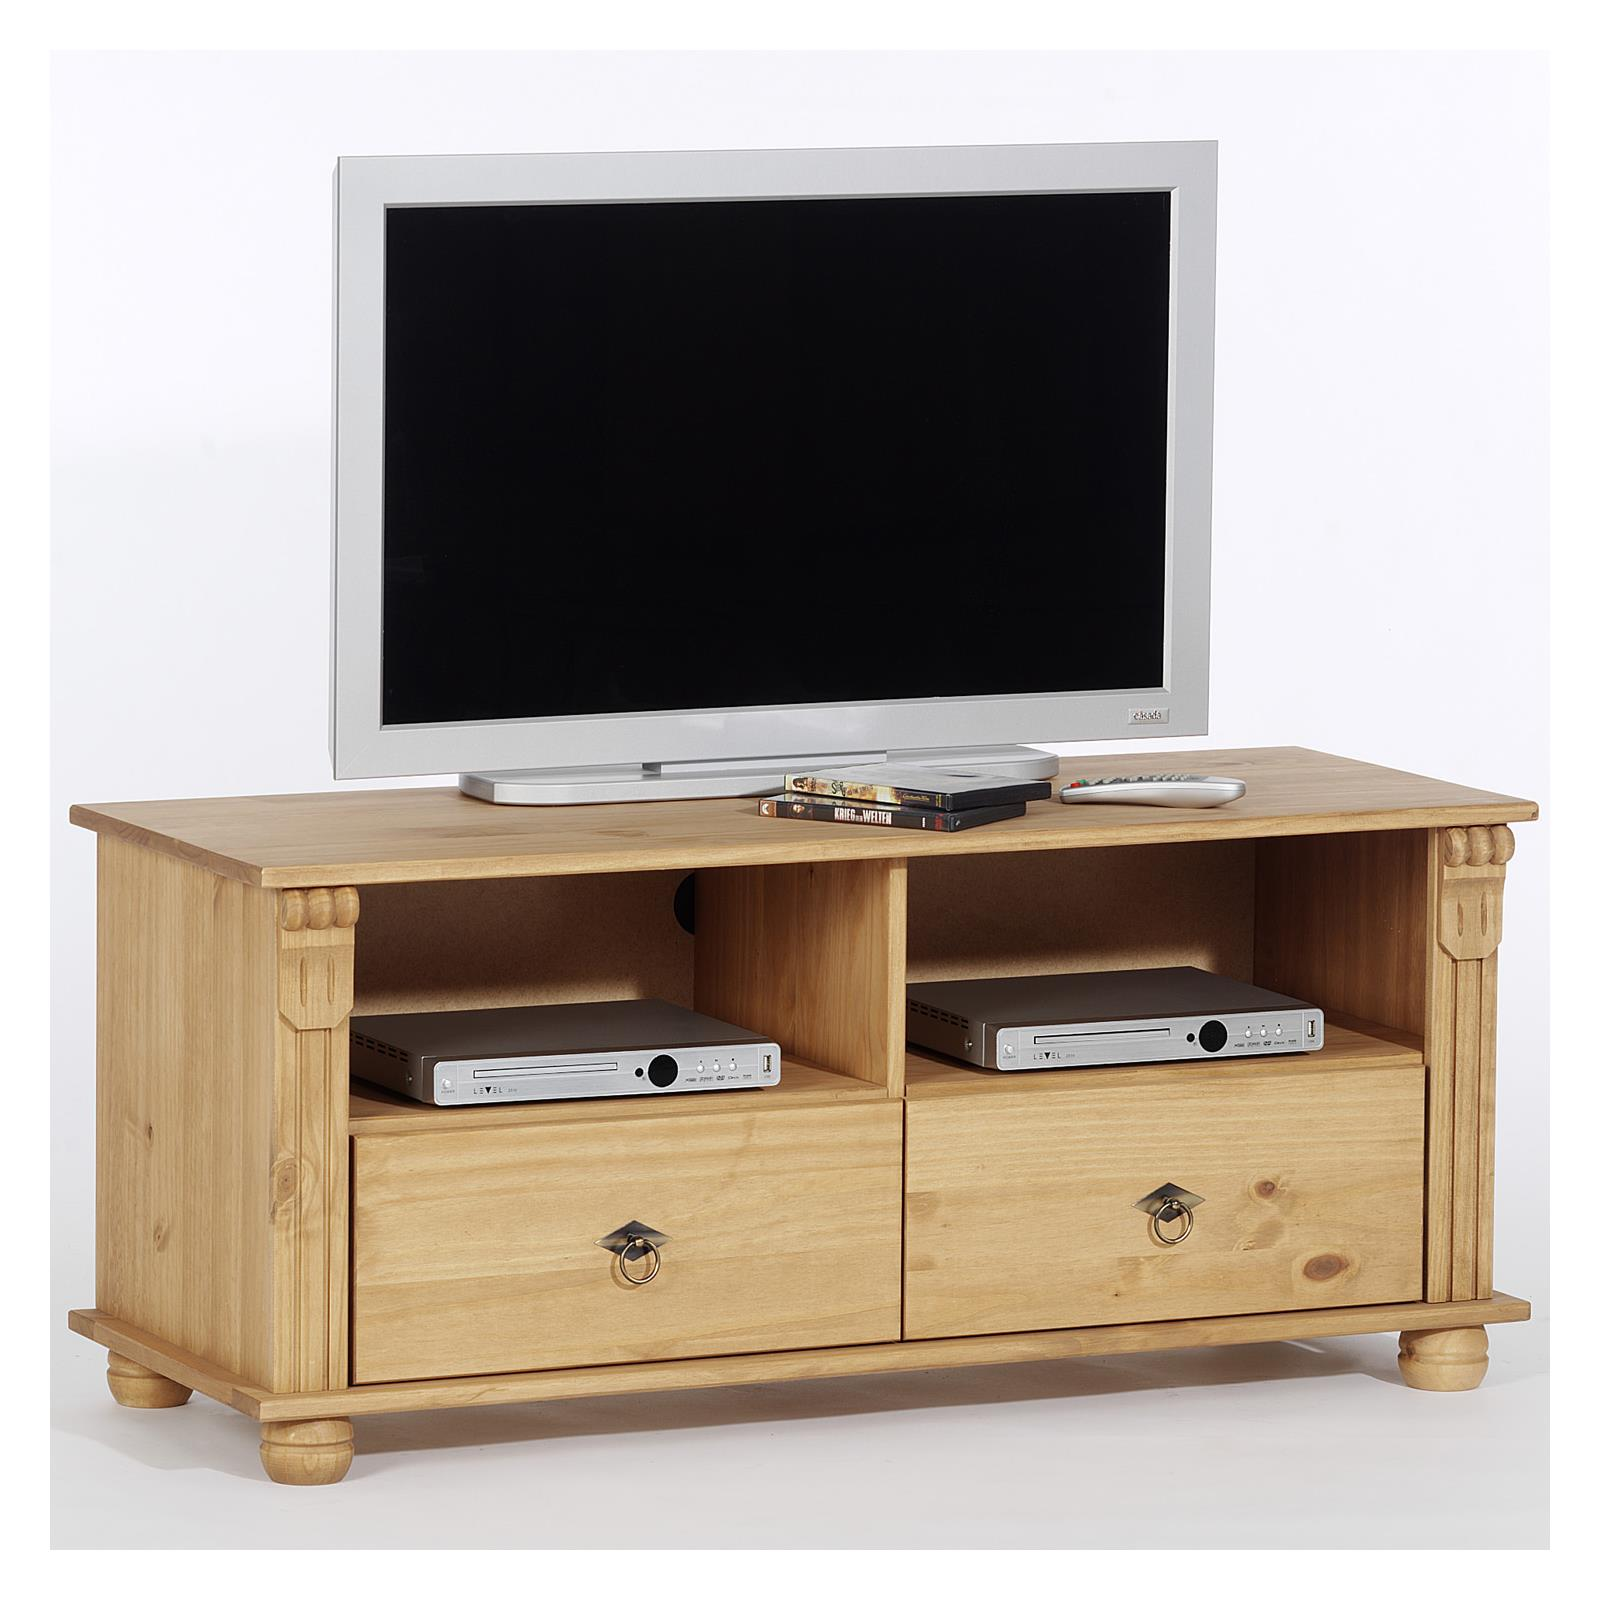 lowboard tv m bel phonom bel tv rack medienm bel hifi tisch phonotisch kiefer 4016787819243 ebay. Black Bedroom Furniture Sets. Home Design Ideas